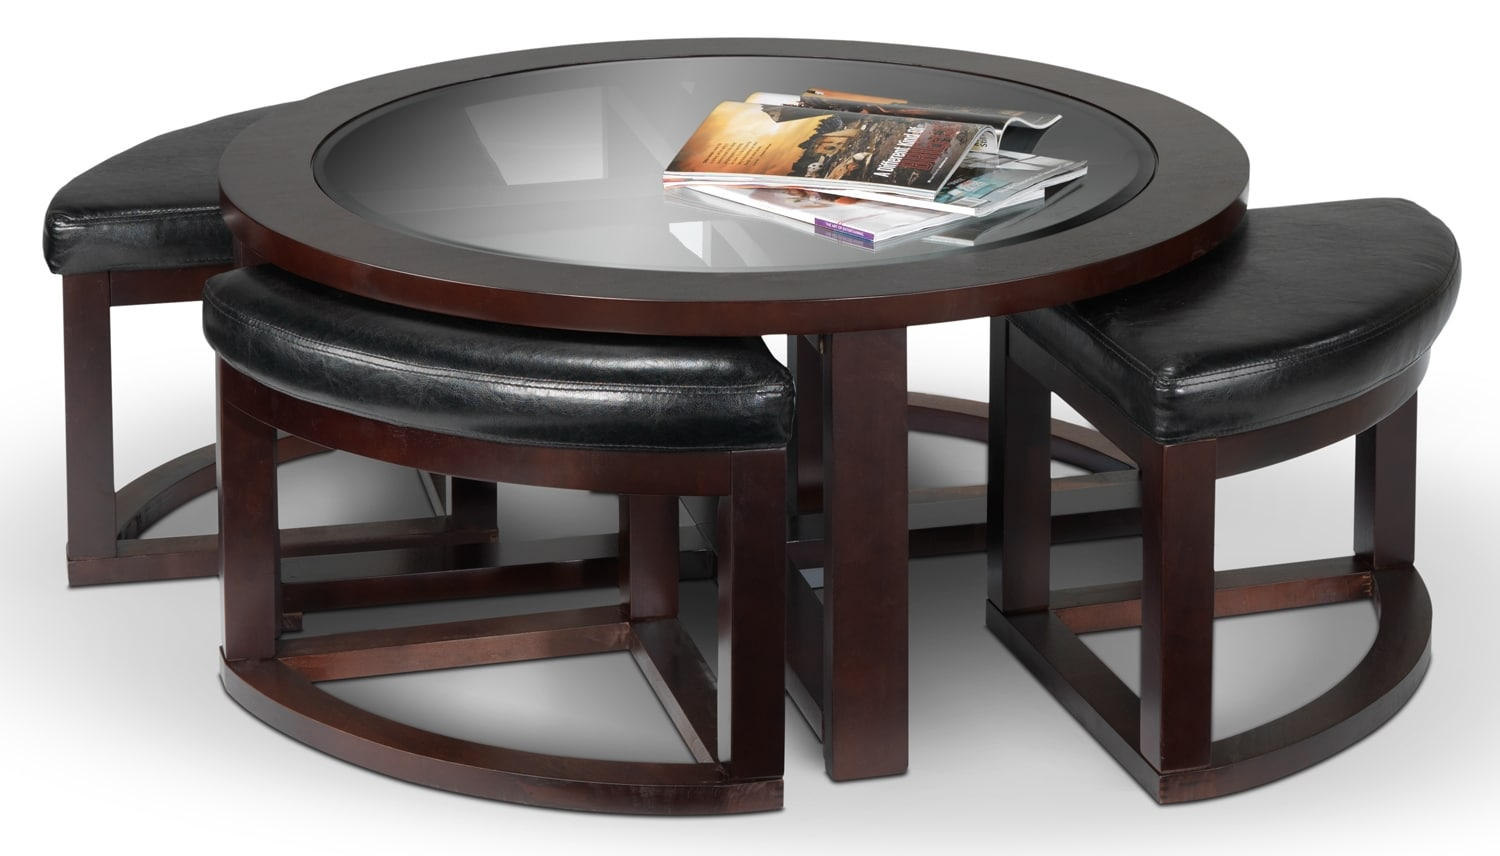 Leons Coffee Tables Canada Part - 23: Leon Furniture Coffee Tables Rascalartsnyc